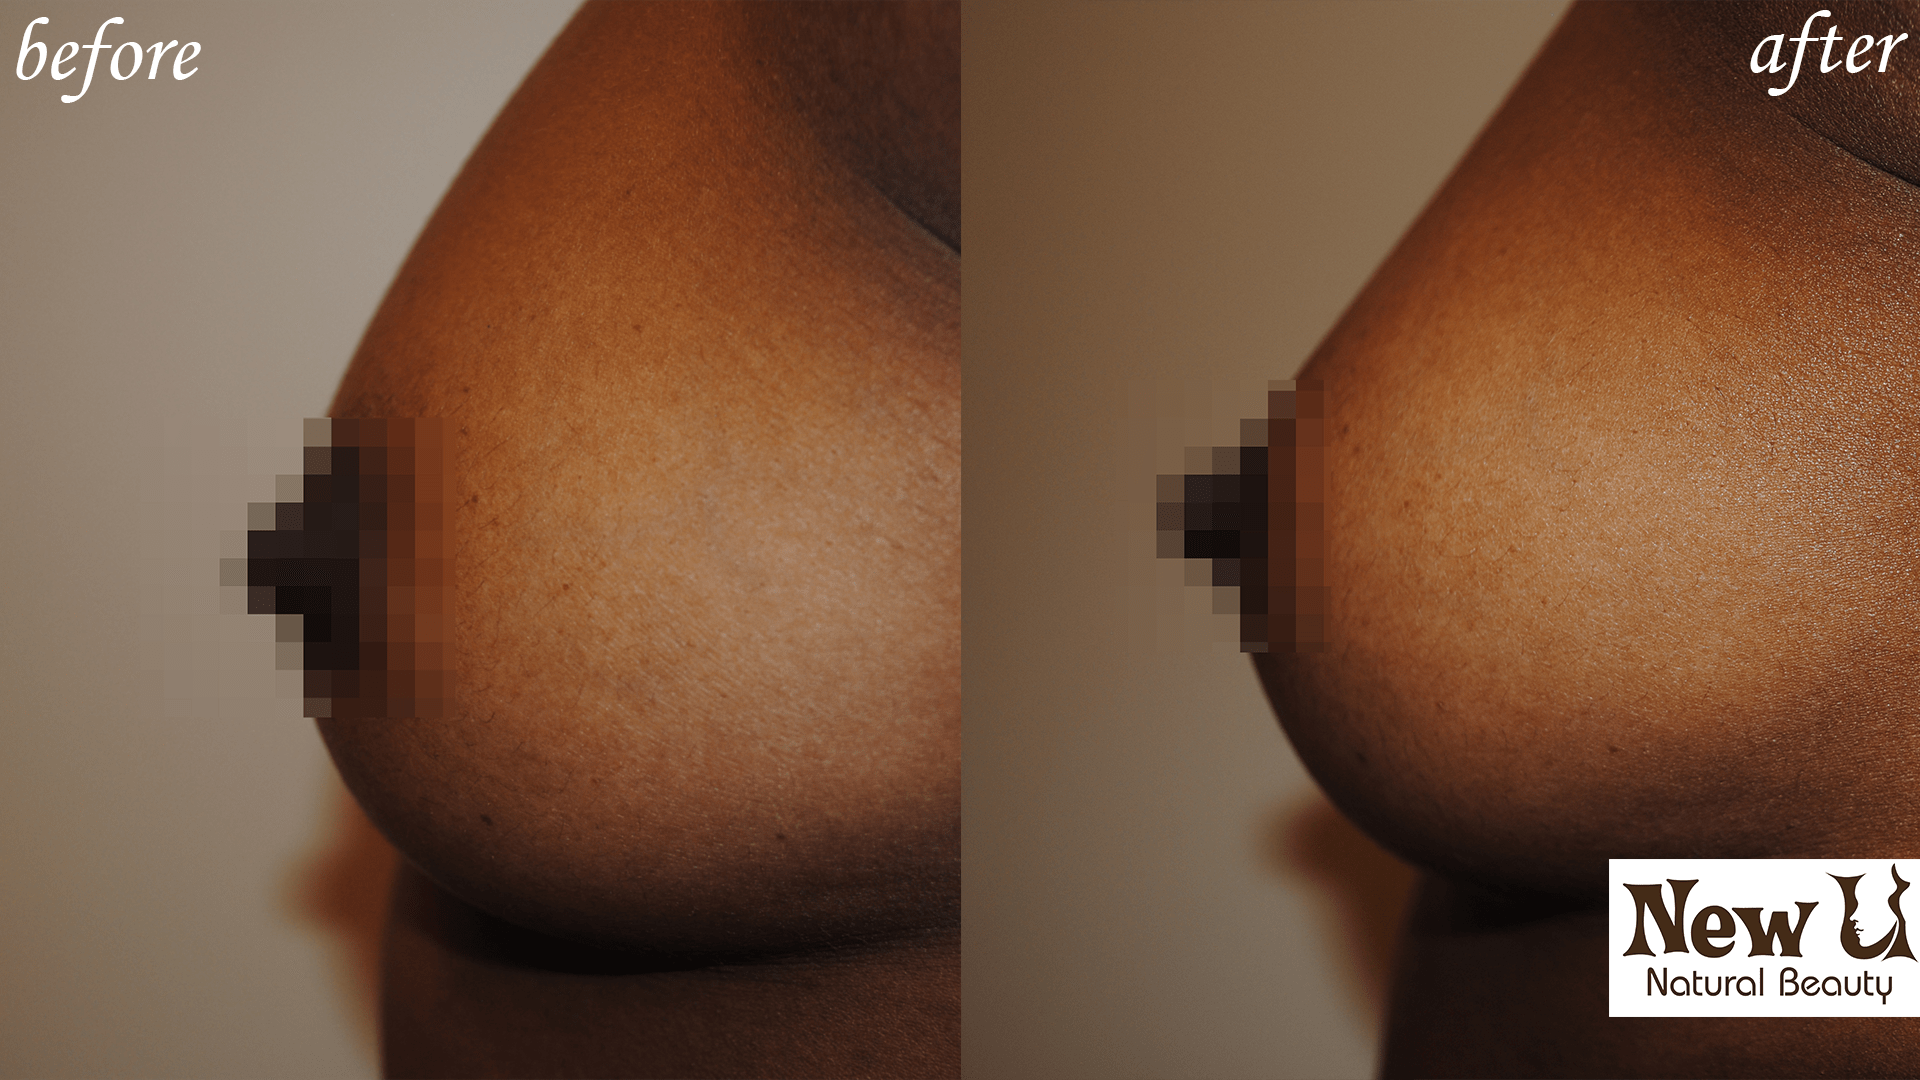 Breast Enhancement 1 Las Vegas Before and After